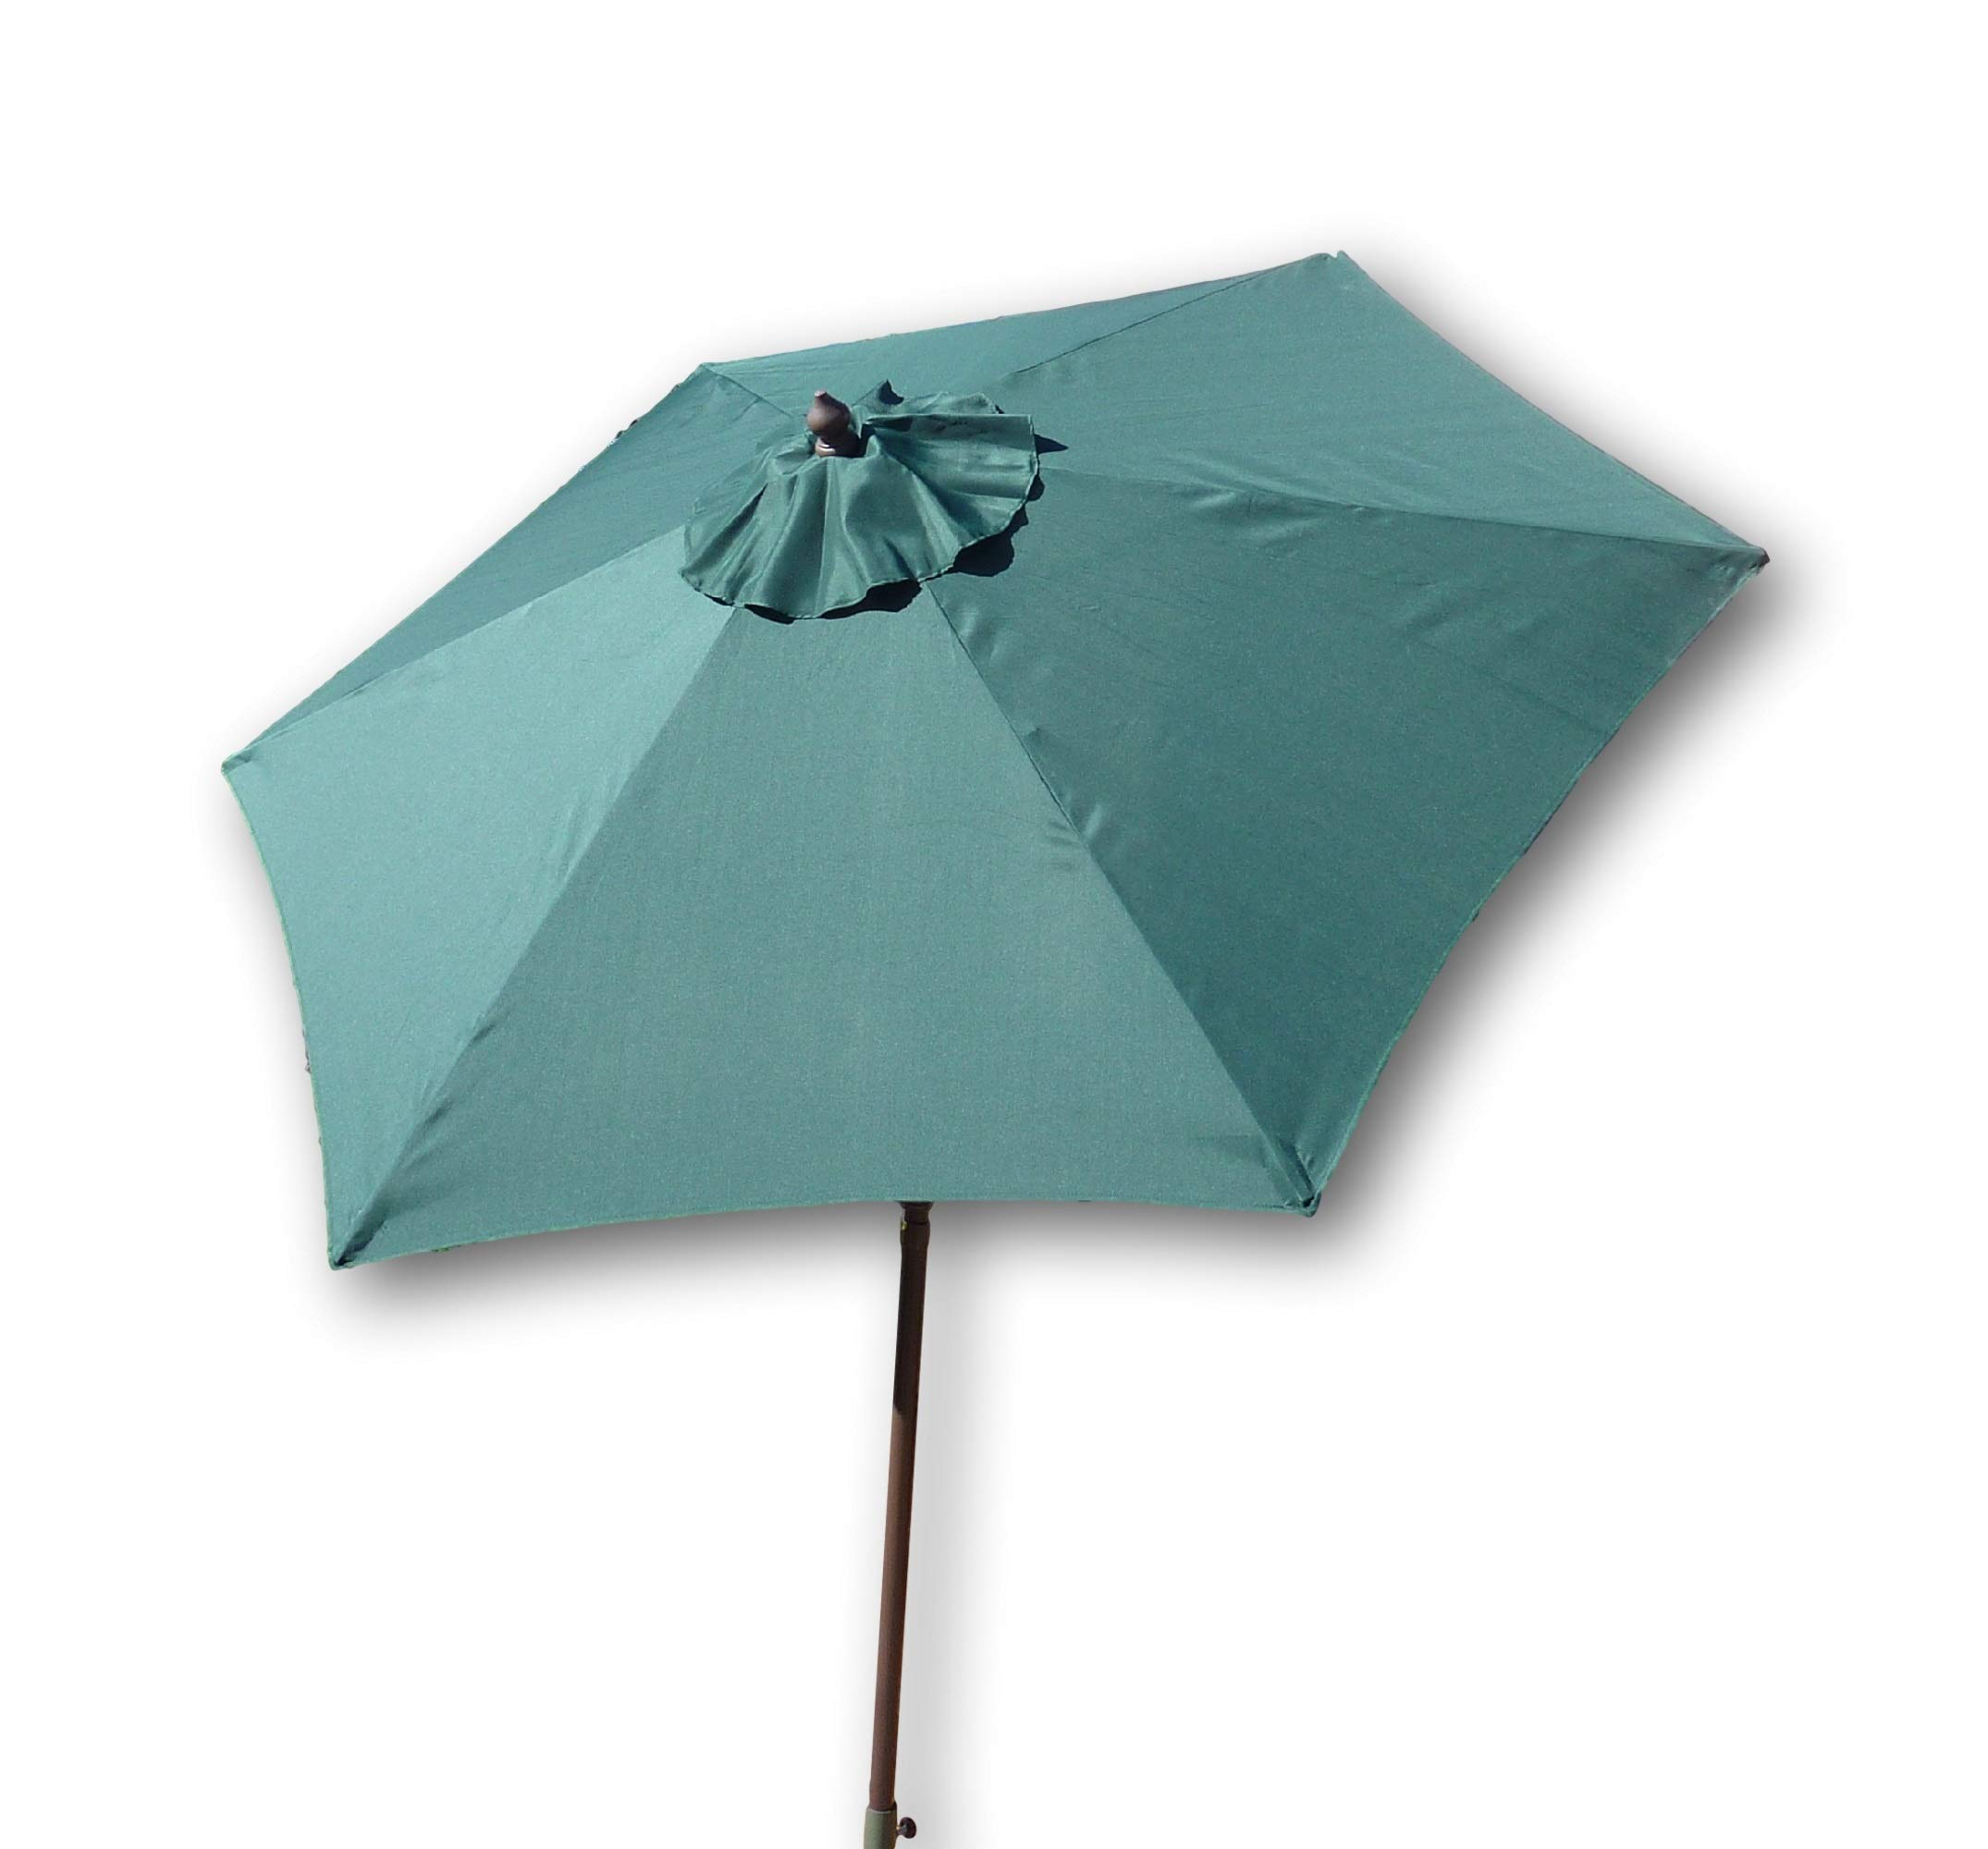 Formosa Covers 7.5 Foot Aluminum Market Umbrella, Crank & Tilt, Strong Fiberglass Ribs, UV Treated, Perfect for Patio, Small Bistro, Deck - Color in Hunter Green - Hunter Green 7.5ft market umbrella with strong and flexible fiber glass ribs and vents for airflow Aluminum frame with Powder coated Bronze finish prevents rust and is lightweight and easy to move Instantly direct shade with easy crank and tilt mechanism - perfect for pool, bistro, deck, patio - shades-parasols, patio-furniture, patio - 715diGkAMuL -